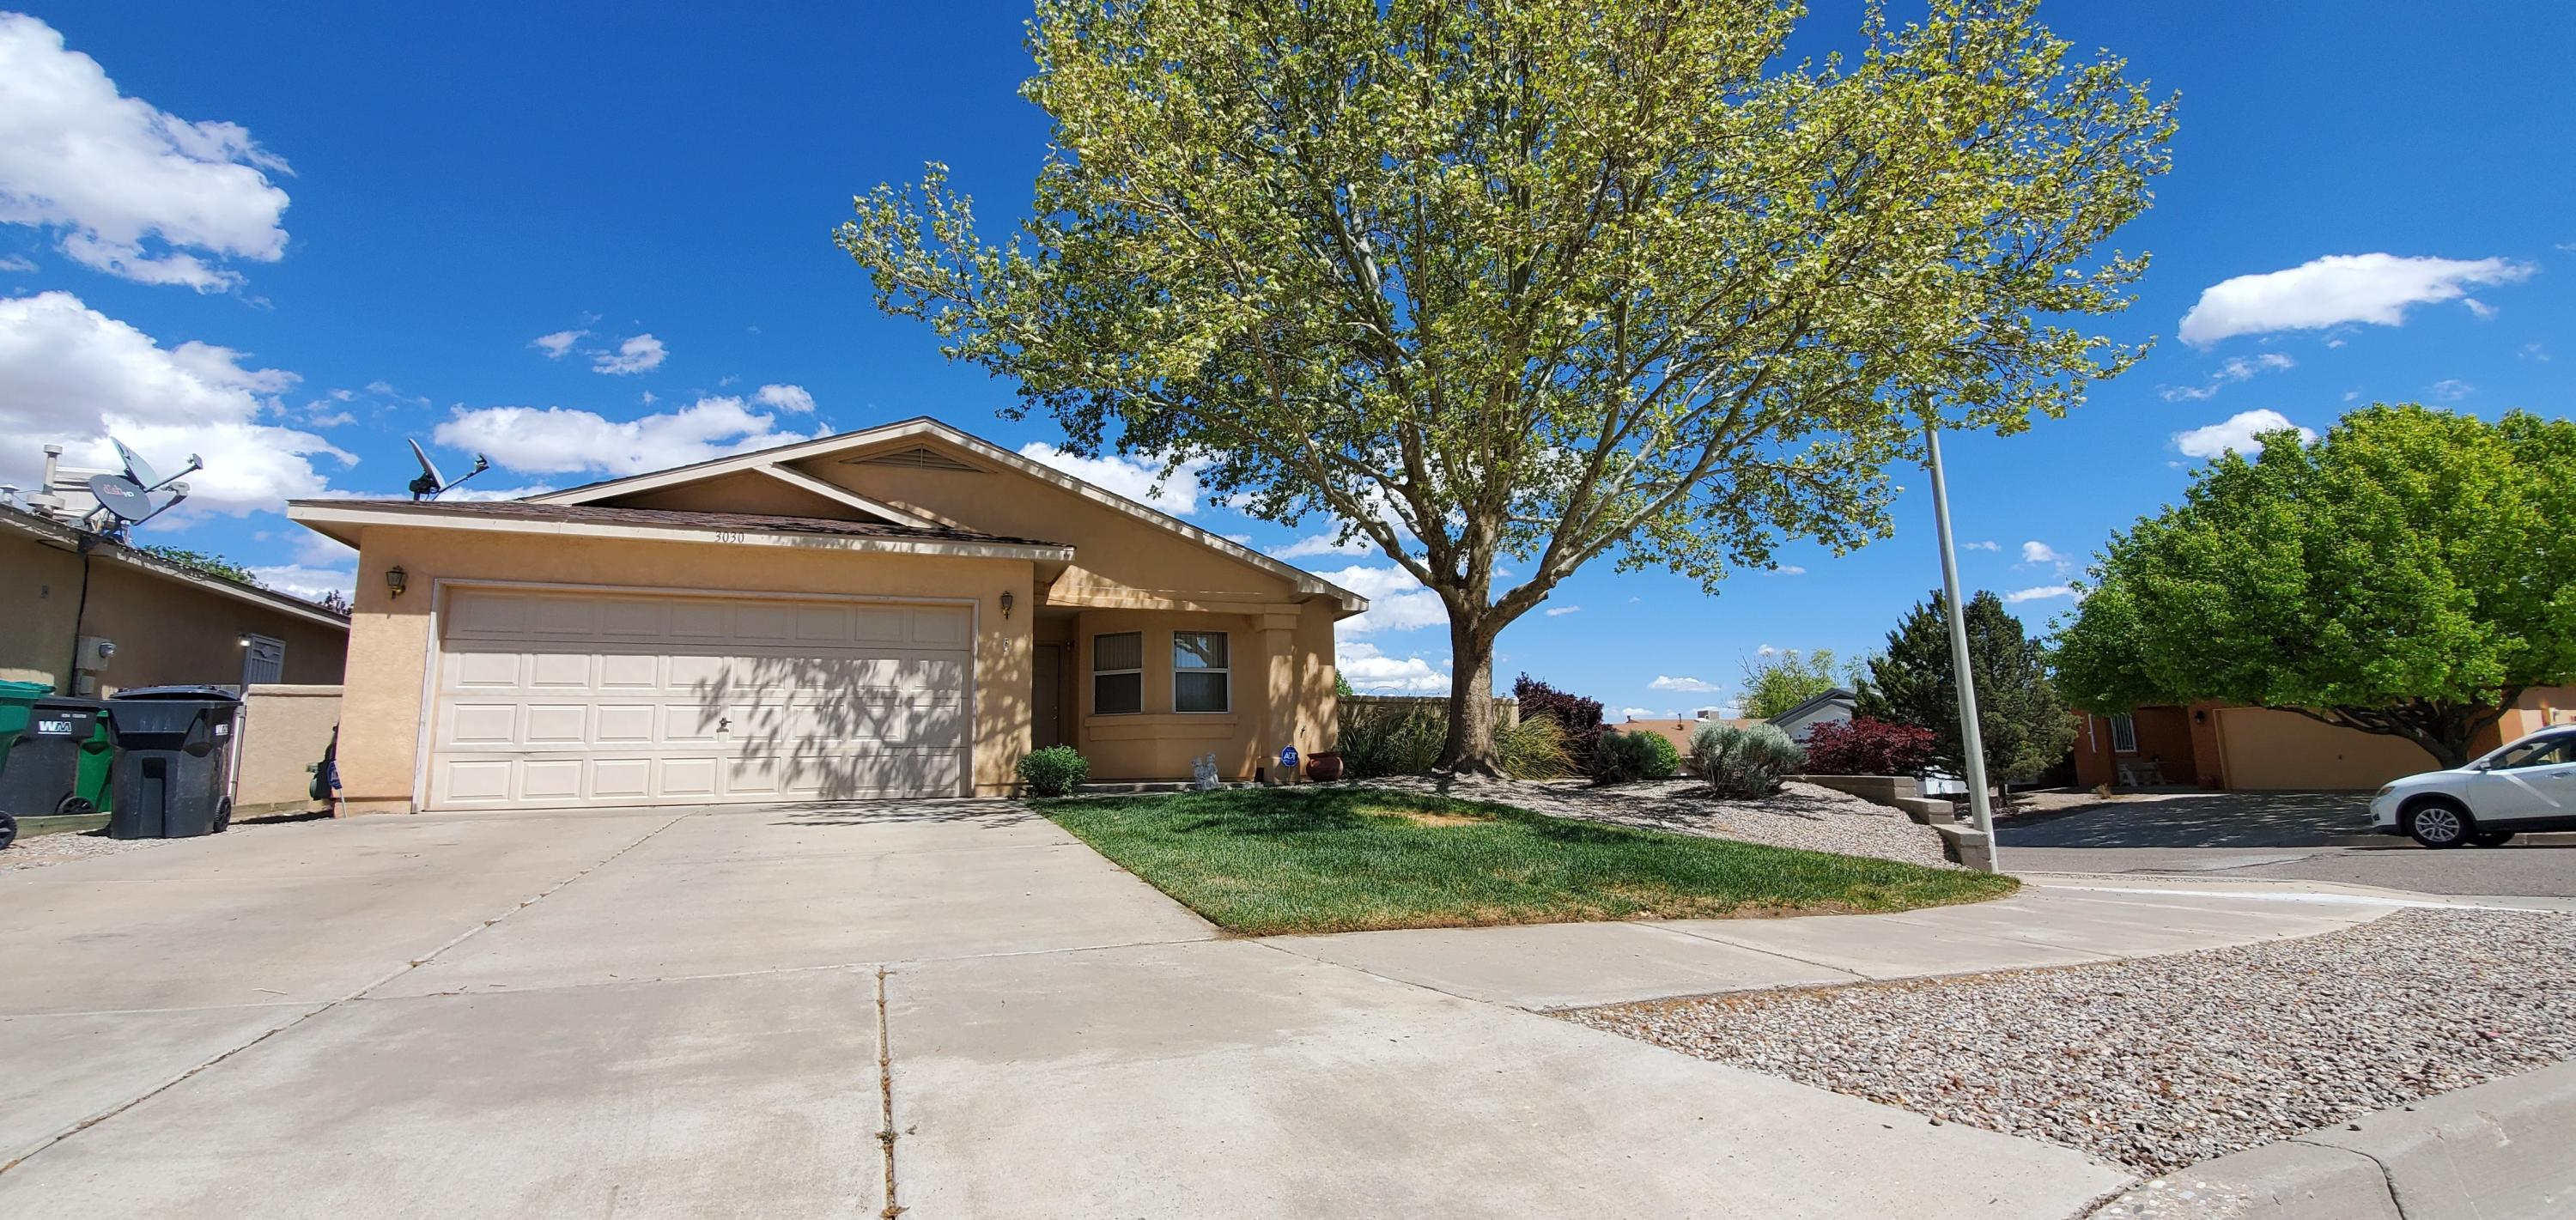 Beautiful single story 3 Bedroom 2 full bath home just became available for sale! 2 car garage - Beautiful landscaped backyard. Enjoy fabulous views of the Sandias from your flagstone back porch, Covered In Latillas And Vigas! House won't stay long in the market, send your bids ASAP